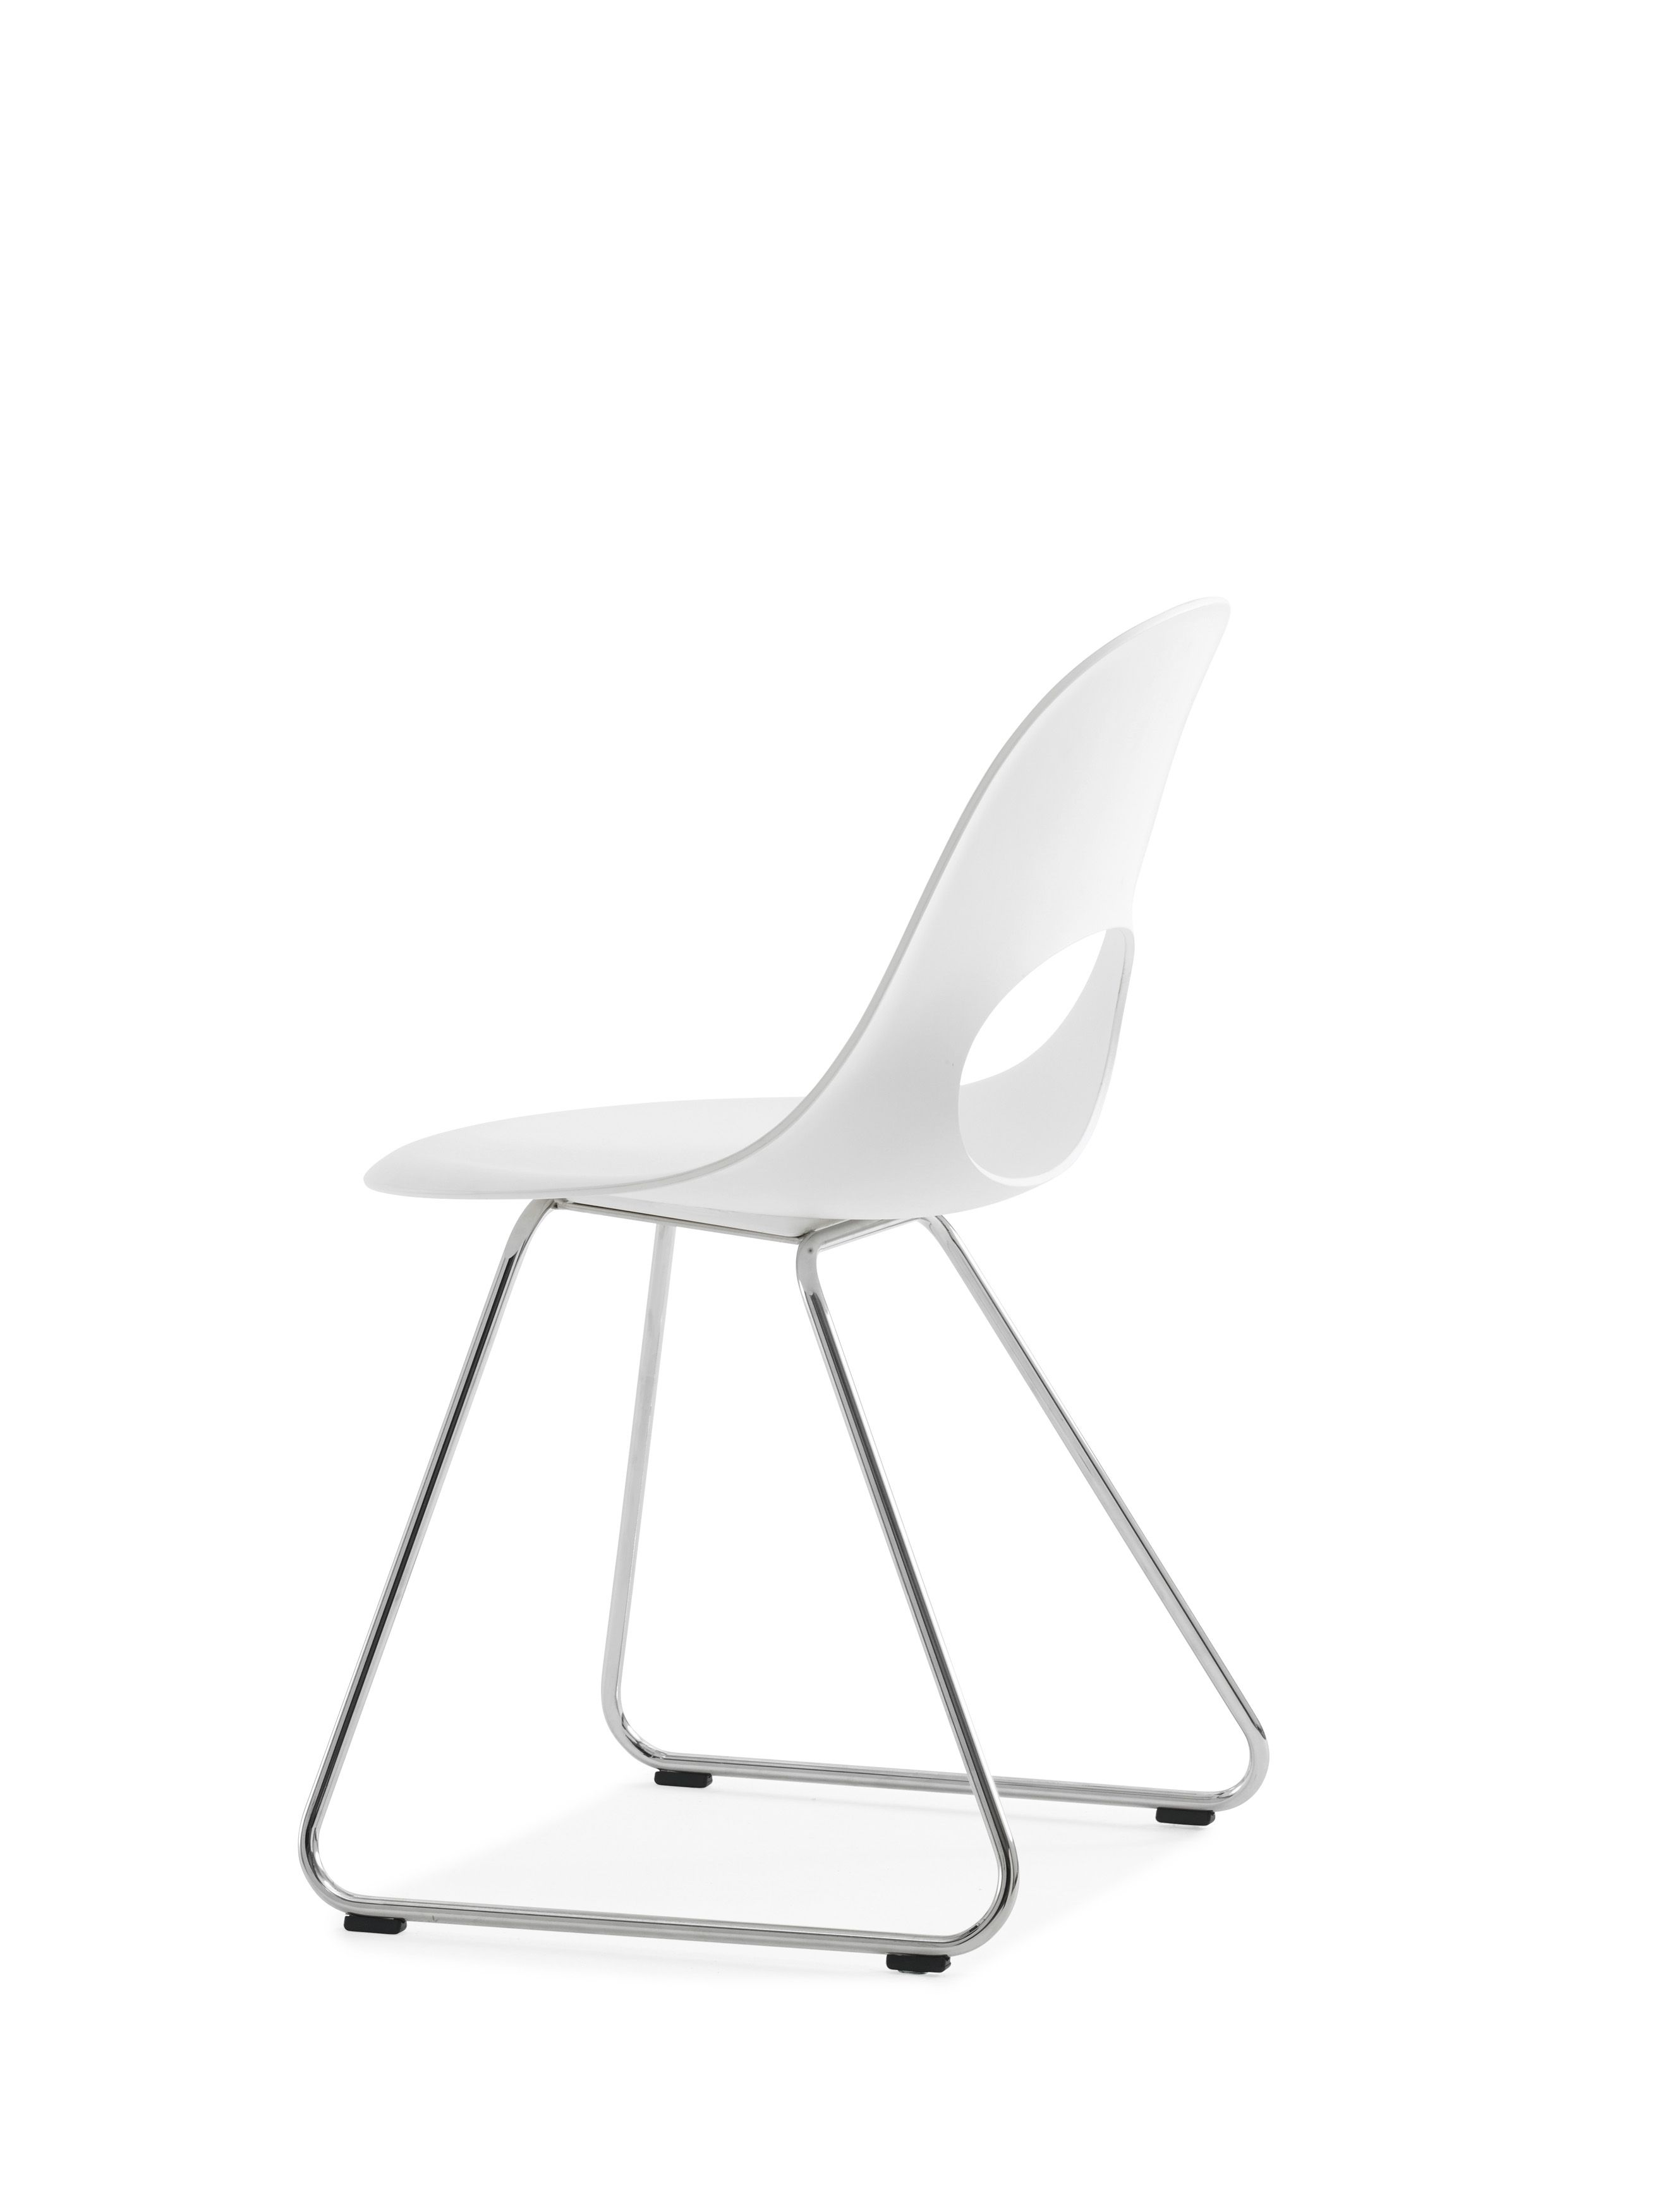 This SayO MiniLux Chair full painted white with metal legs. Find out more at www.sayo.dk.